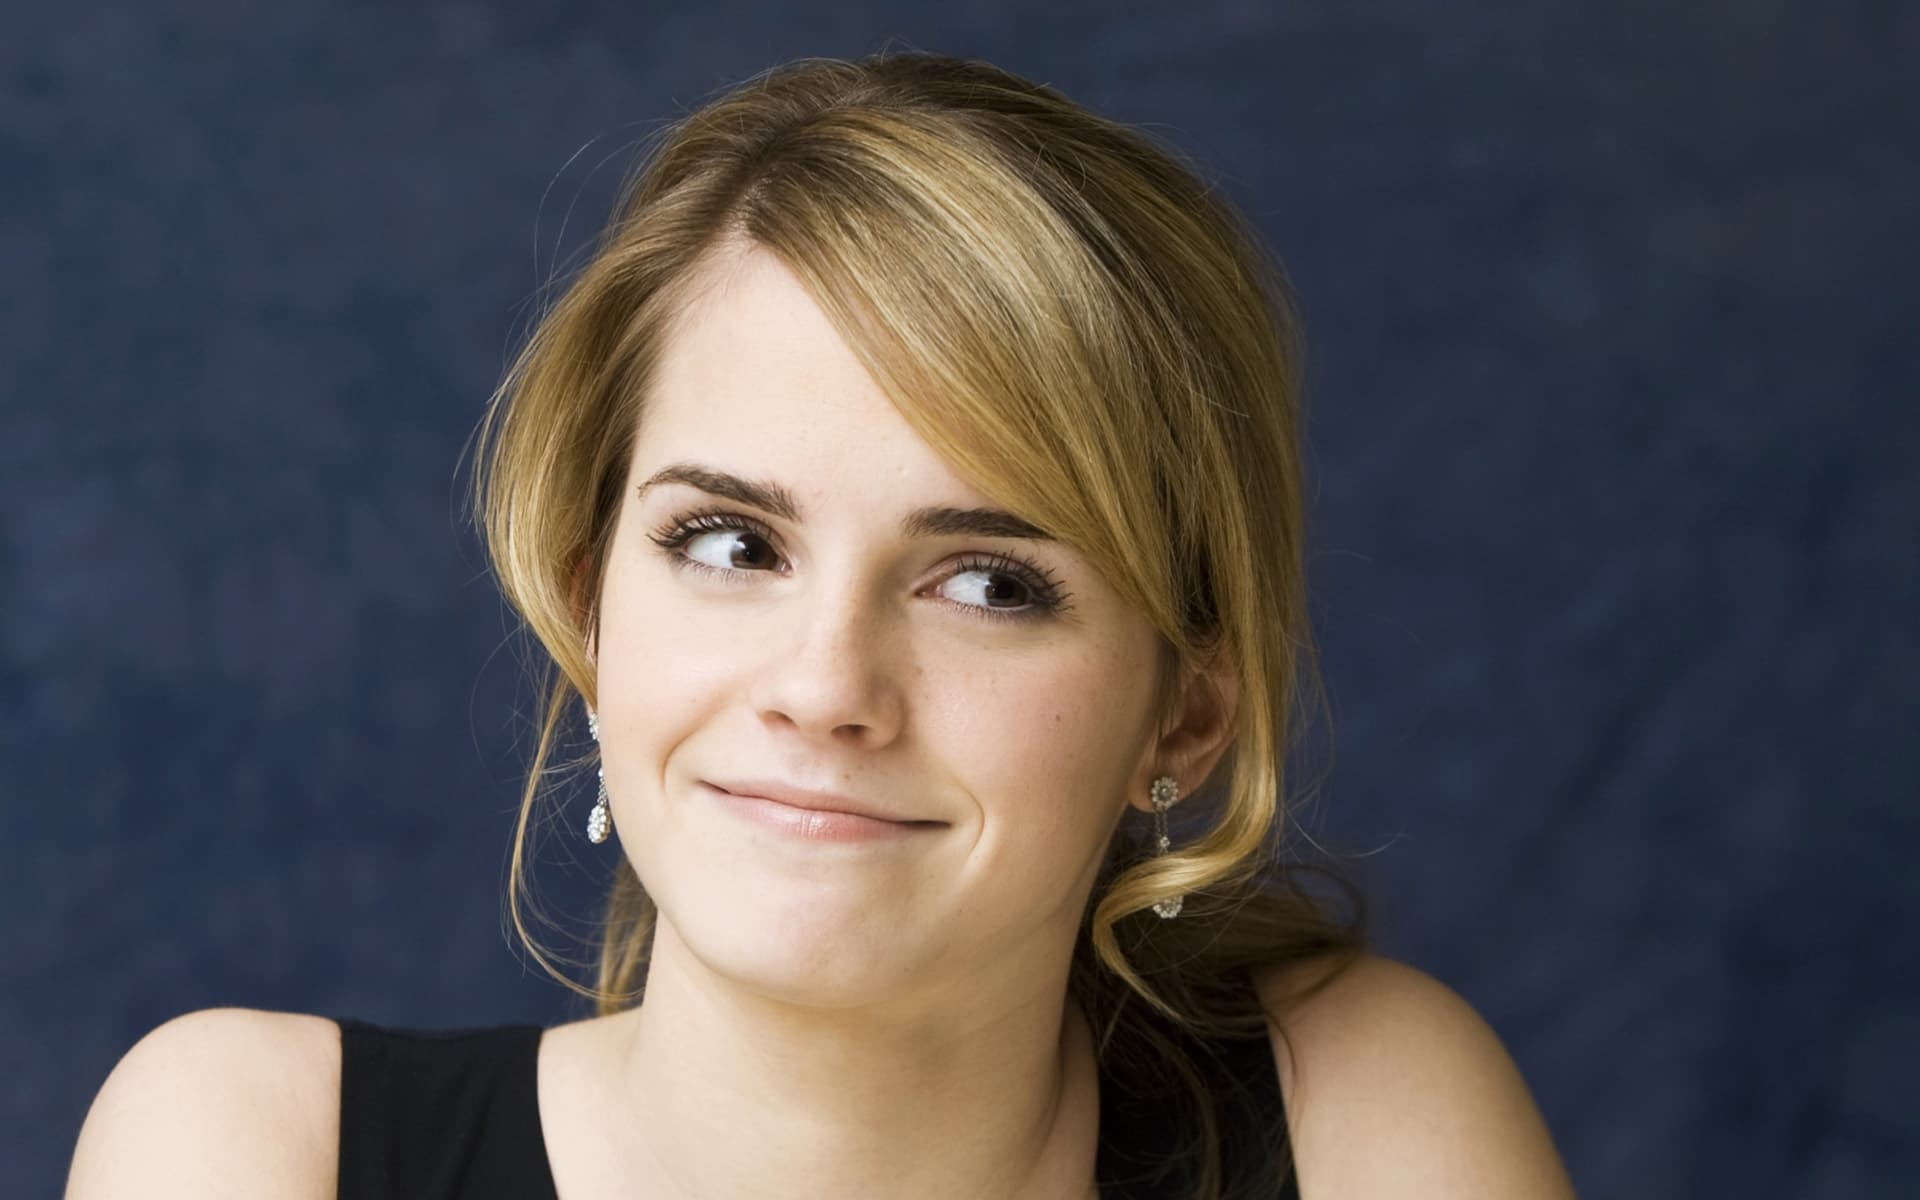 Girl Drinking Alcohol Wallpaper 40 Emma Watson Wallpapers High Quality Resolution Download